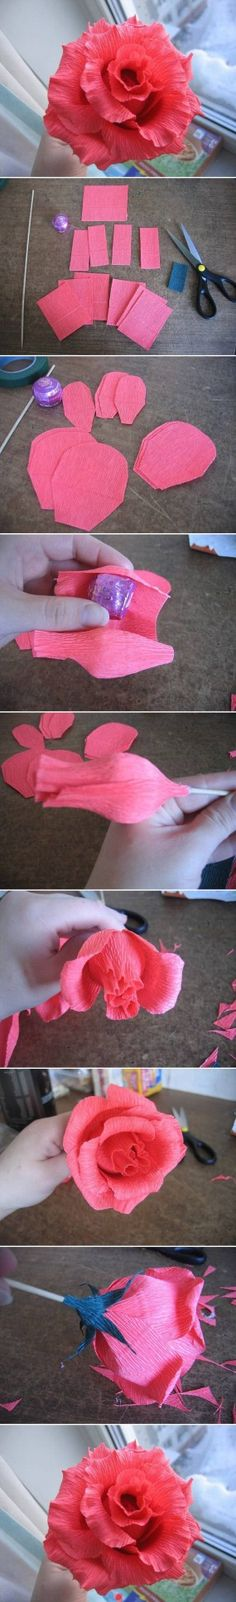 DIY Roses flowers diy crafts home made easy crafts craft idea crafts ideas diy ideas diy crafts diy idea do it yourself diy projects diy craft handmade how to tutorial Handmade Flowers, Diy Flowers, Fabric Flowers, Flower Bouquets, Real Flowers, Diy Paper, Paper Crafts, Diy Fleur, Chocolate Diy